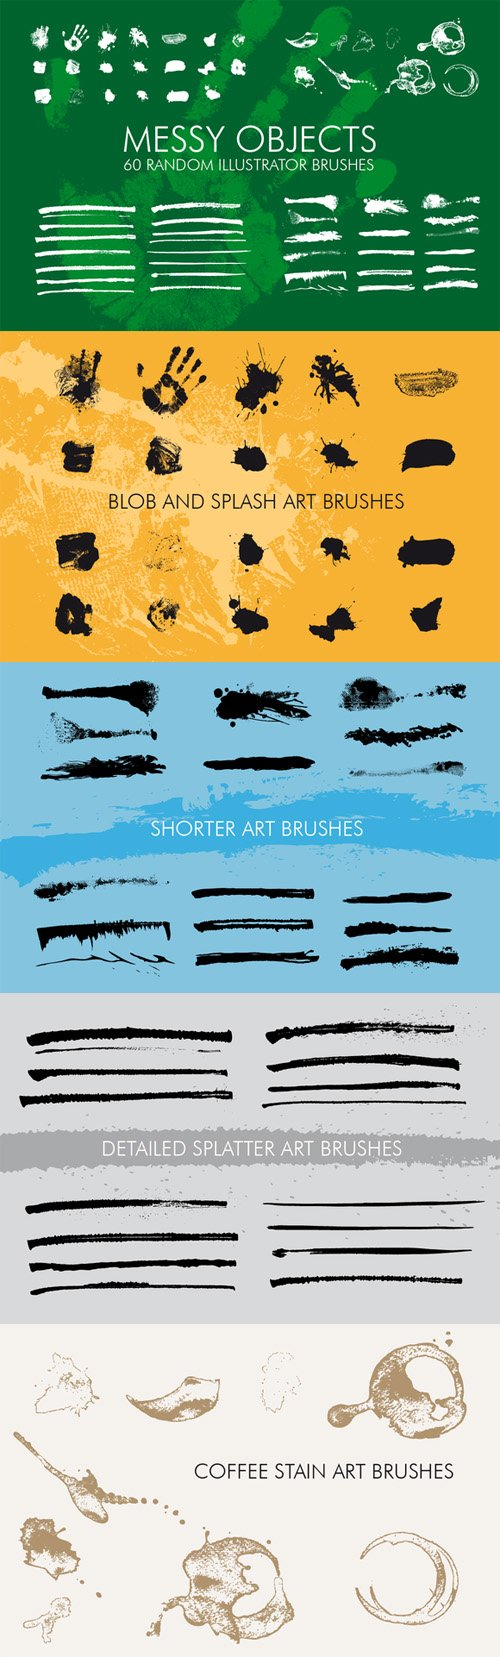 60 Messy Illustrator Brushes - Creativemarket 173190